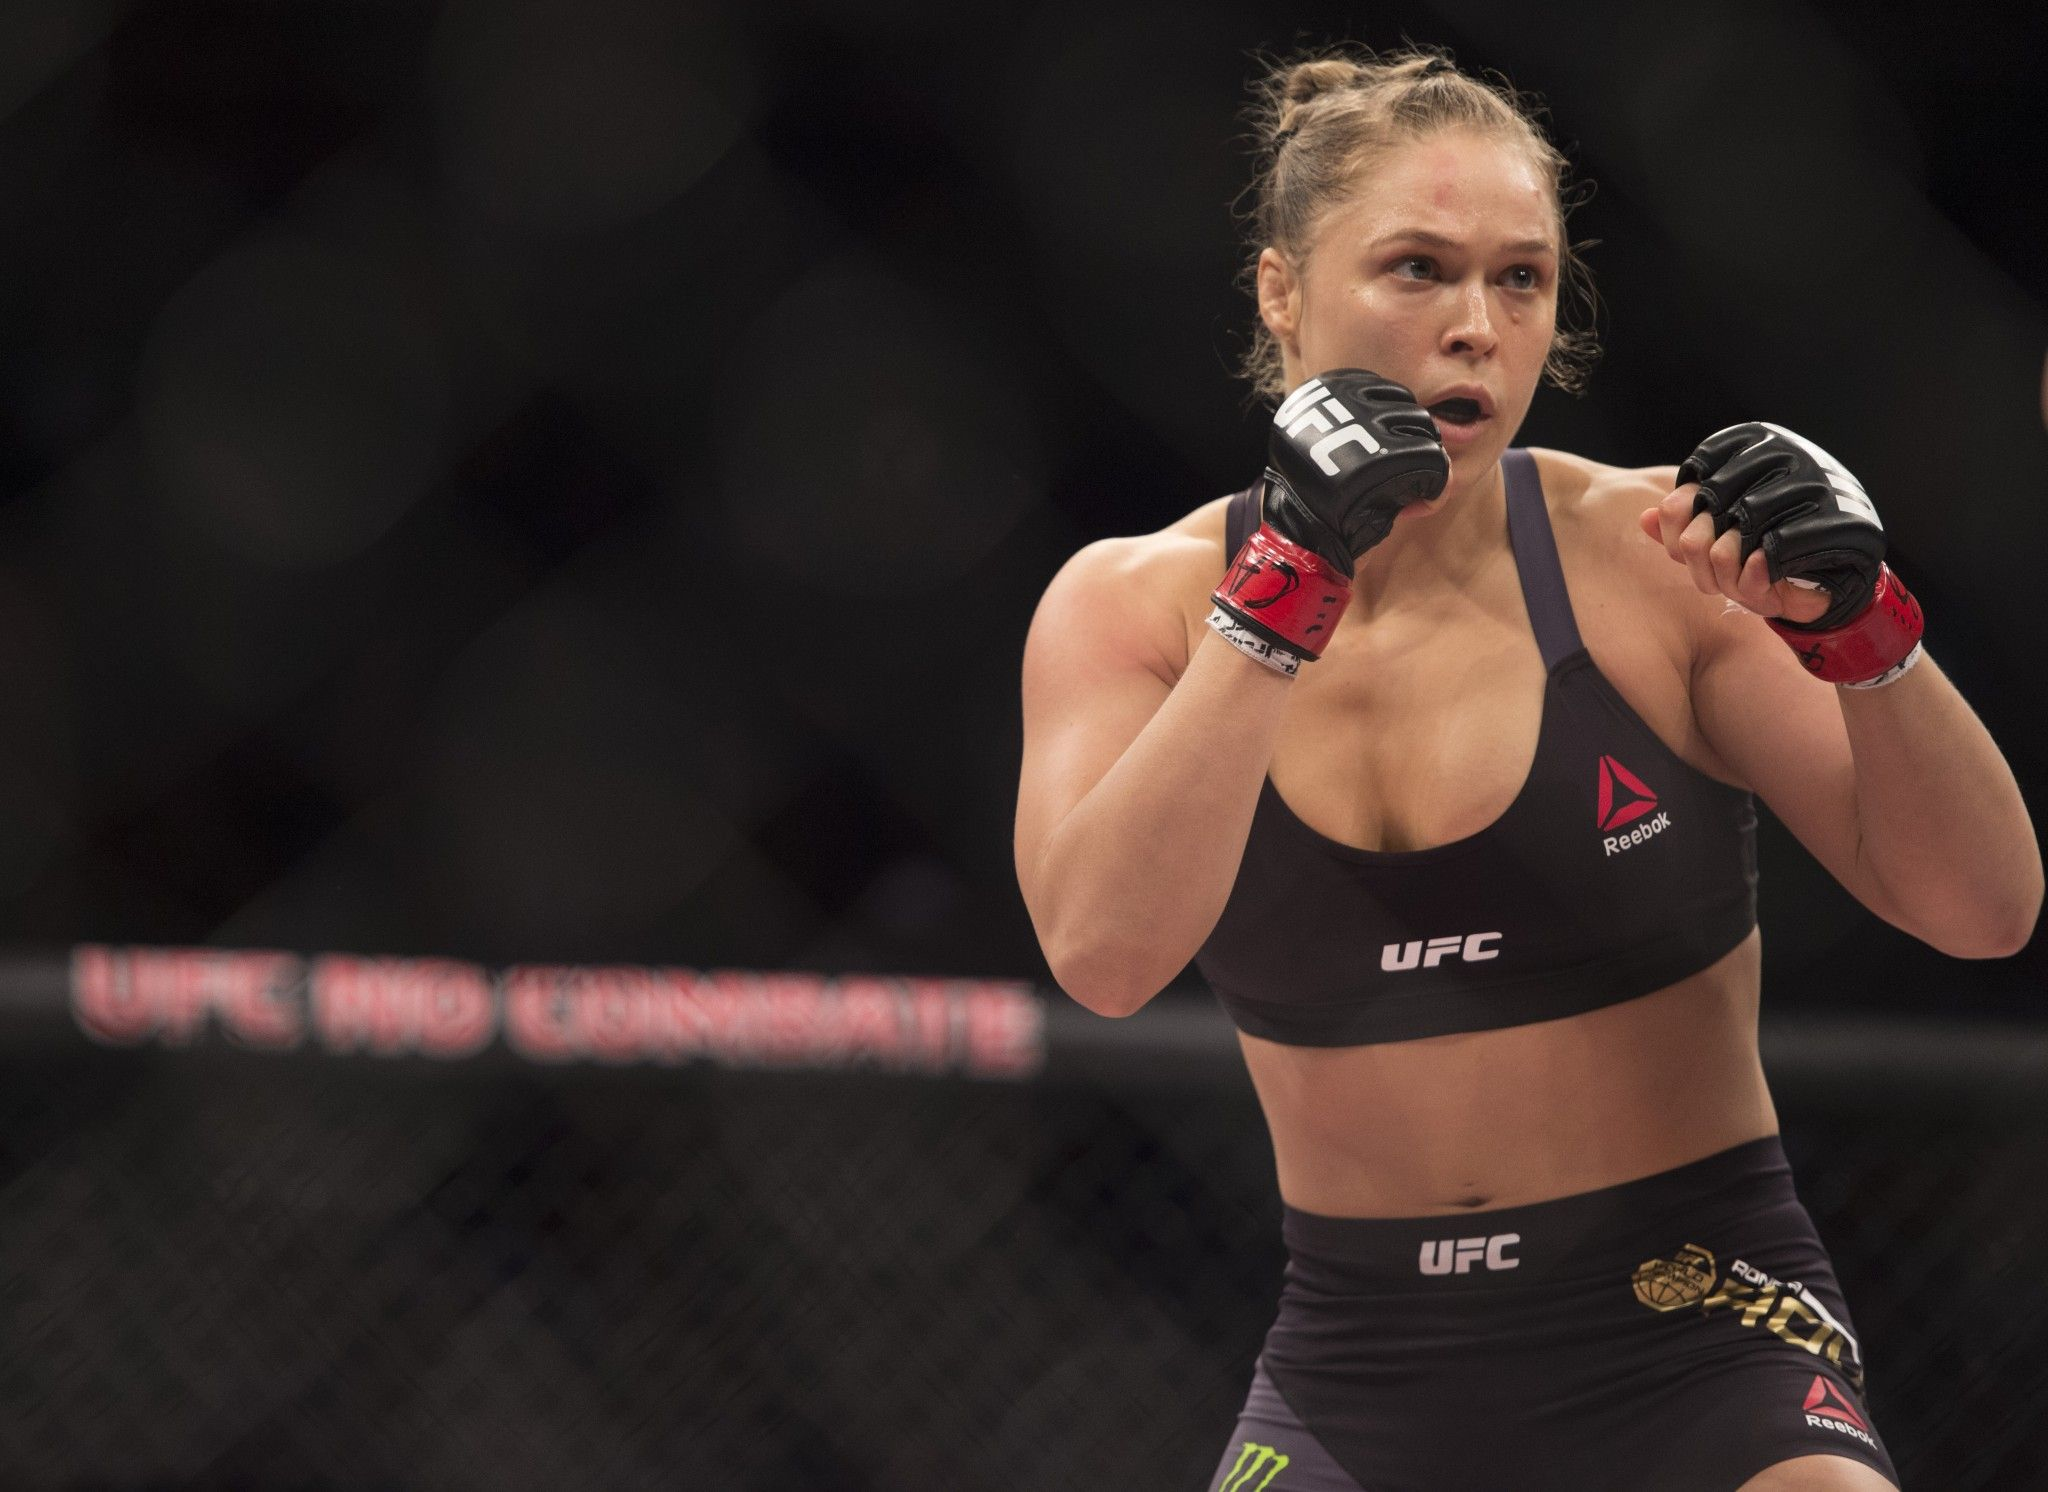 Ronda Rousey UFC Hall of Fame